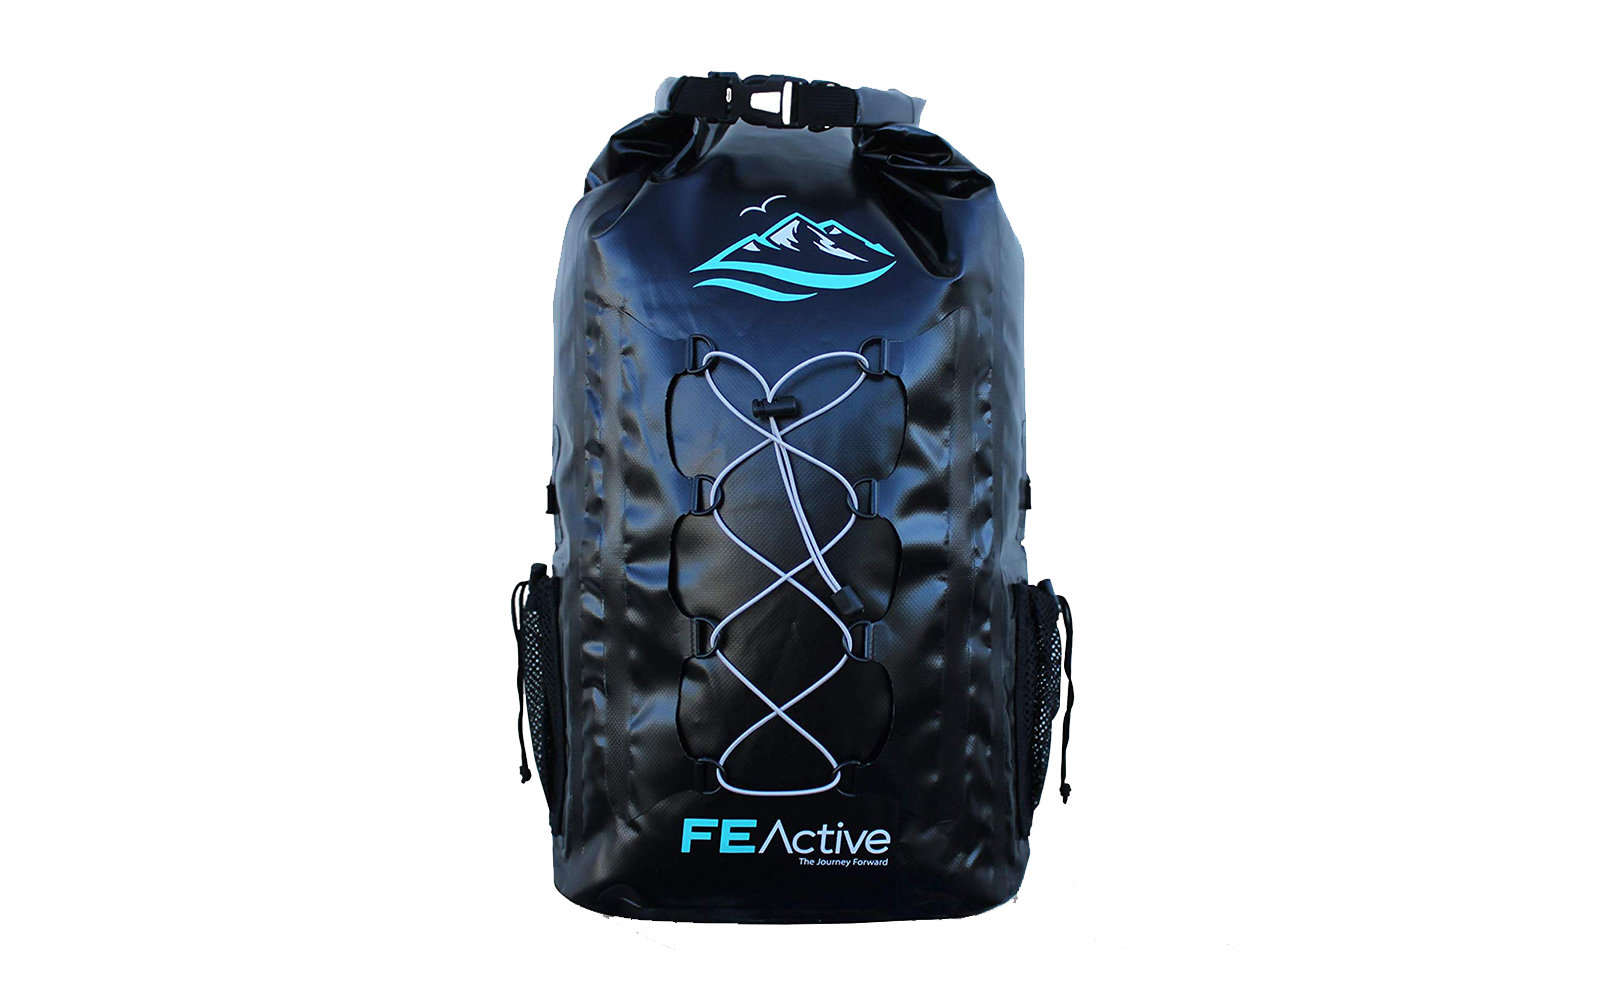 0d0aedf529a The Best Waterproof Travel Backpacks in 2019